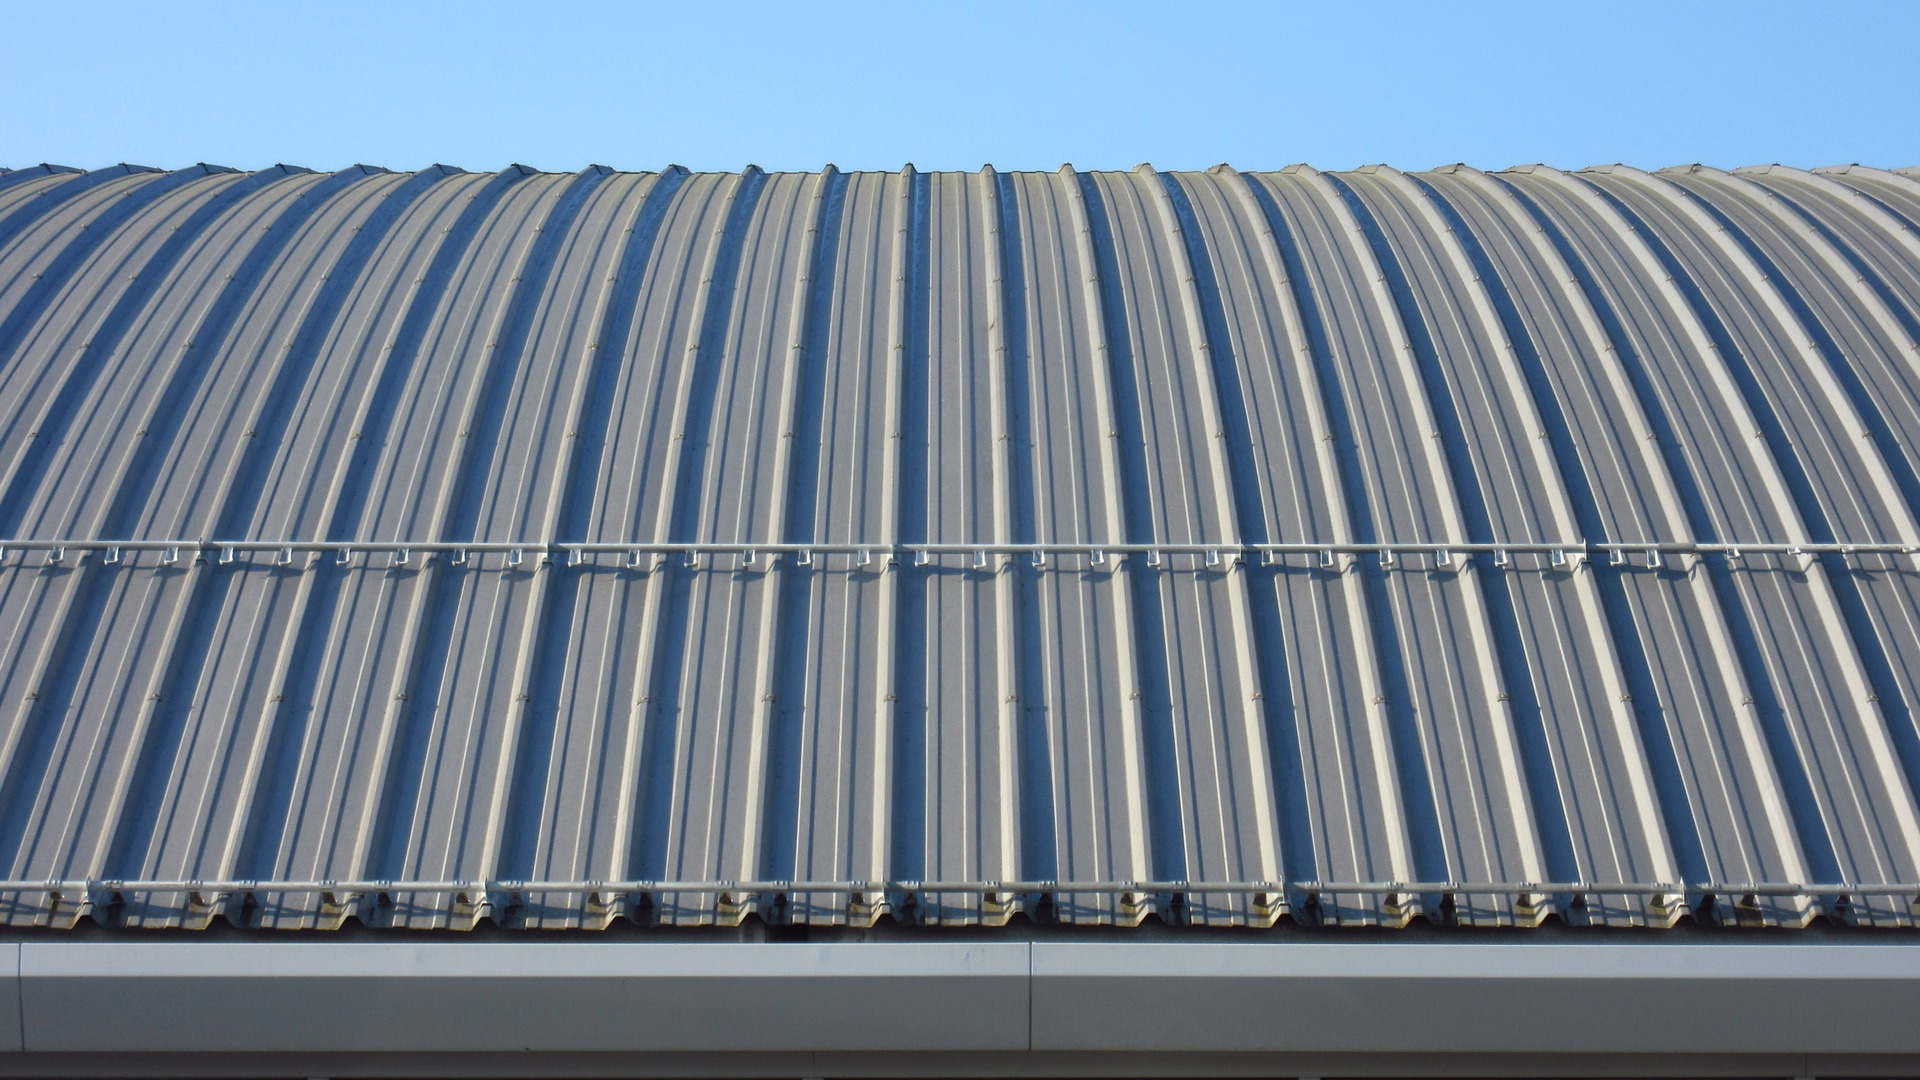 sheet-metal-roof-1325466_1920